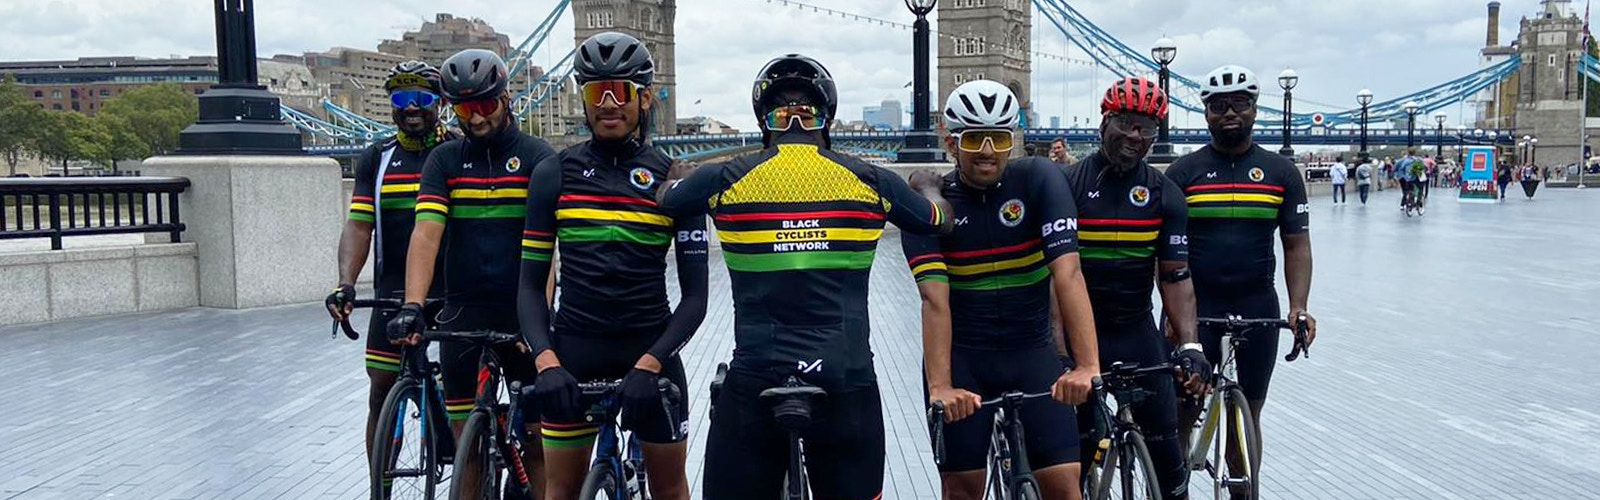 SIS - The Black Cyclists Network - Breaking down barriers and forging a new path in cycling